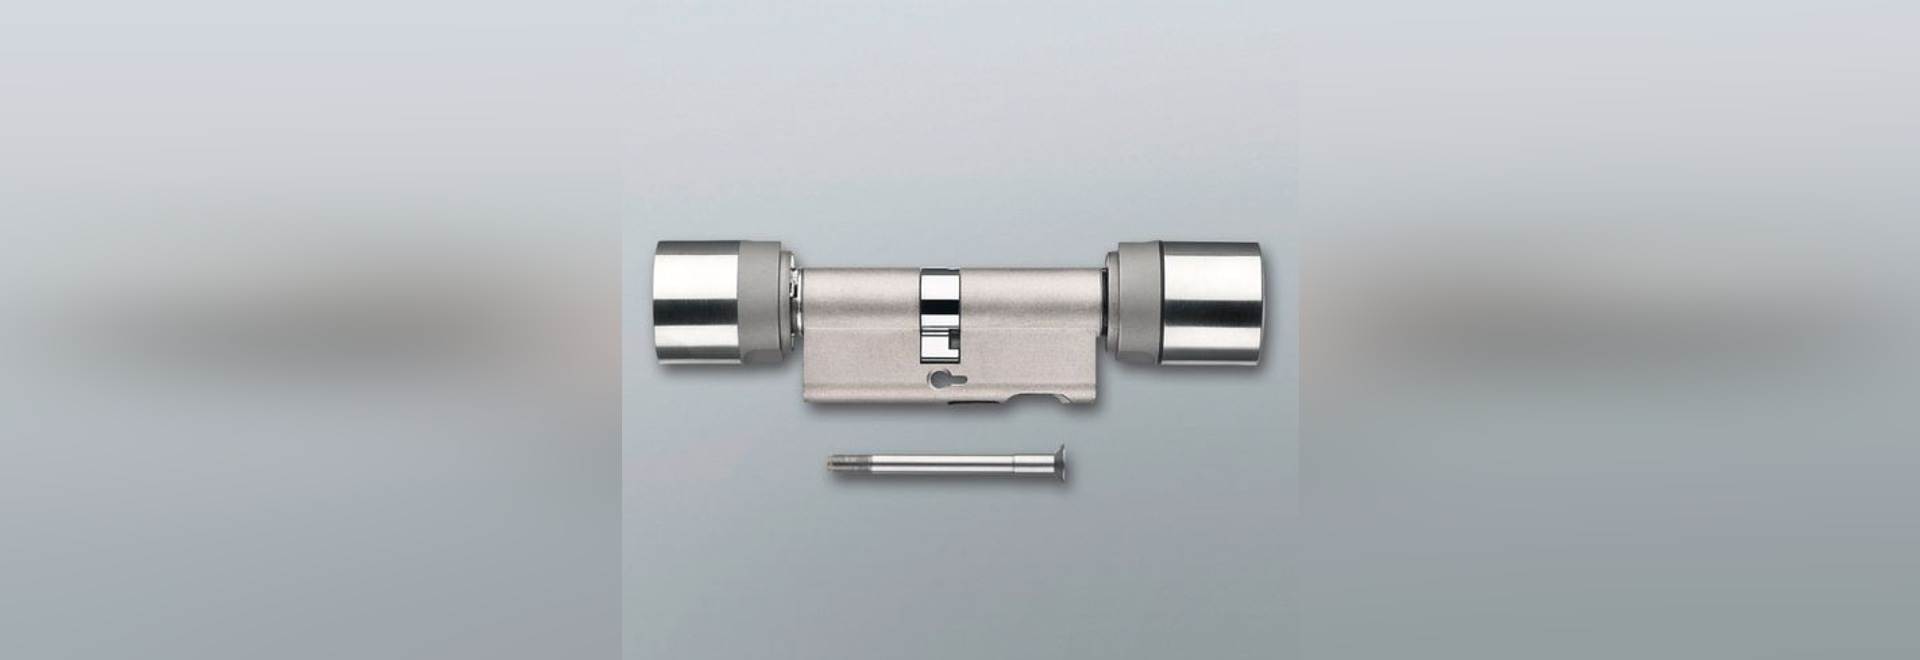 NEW: electronic door lock cylinder by Simons-Voss